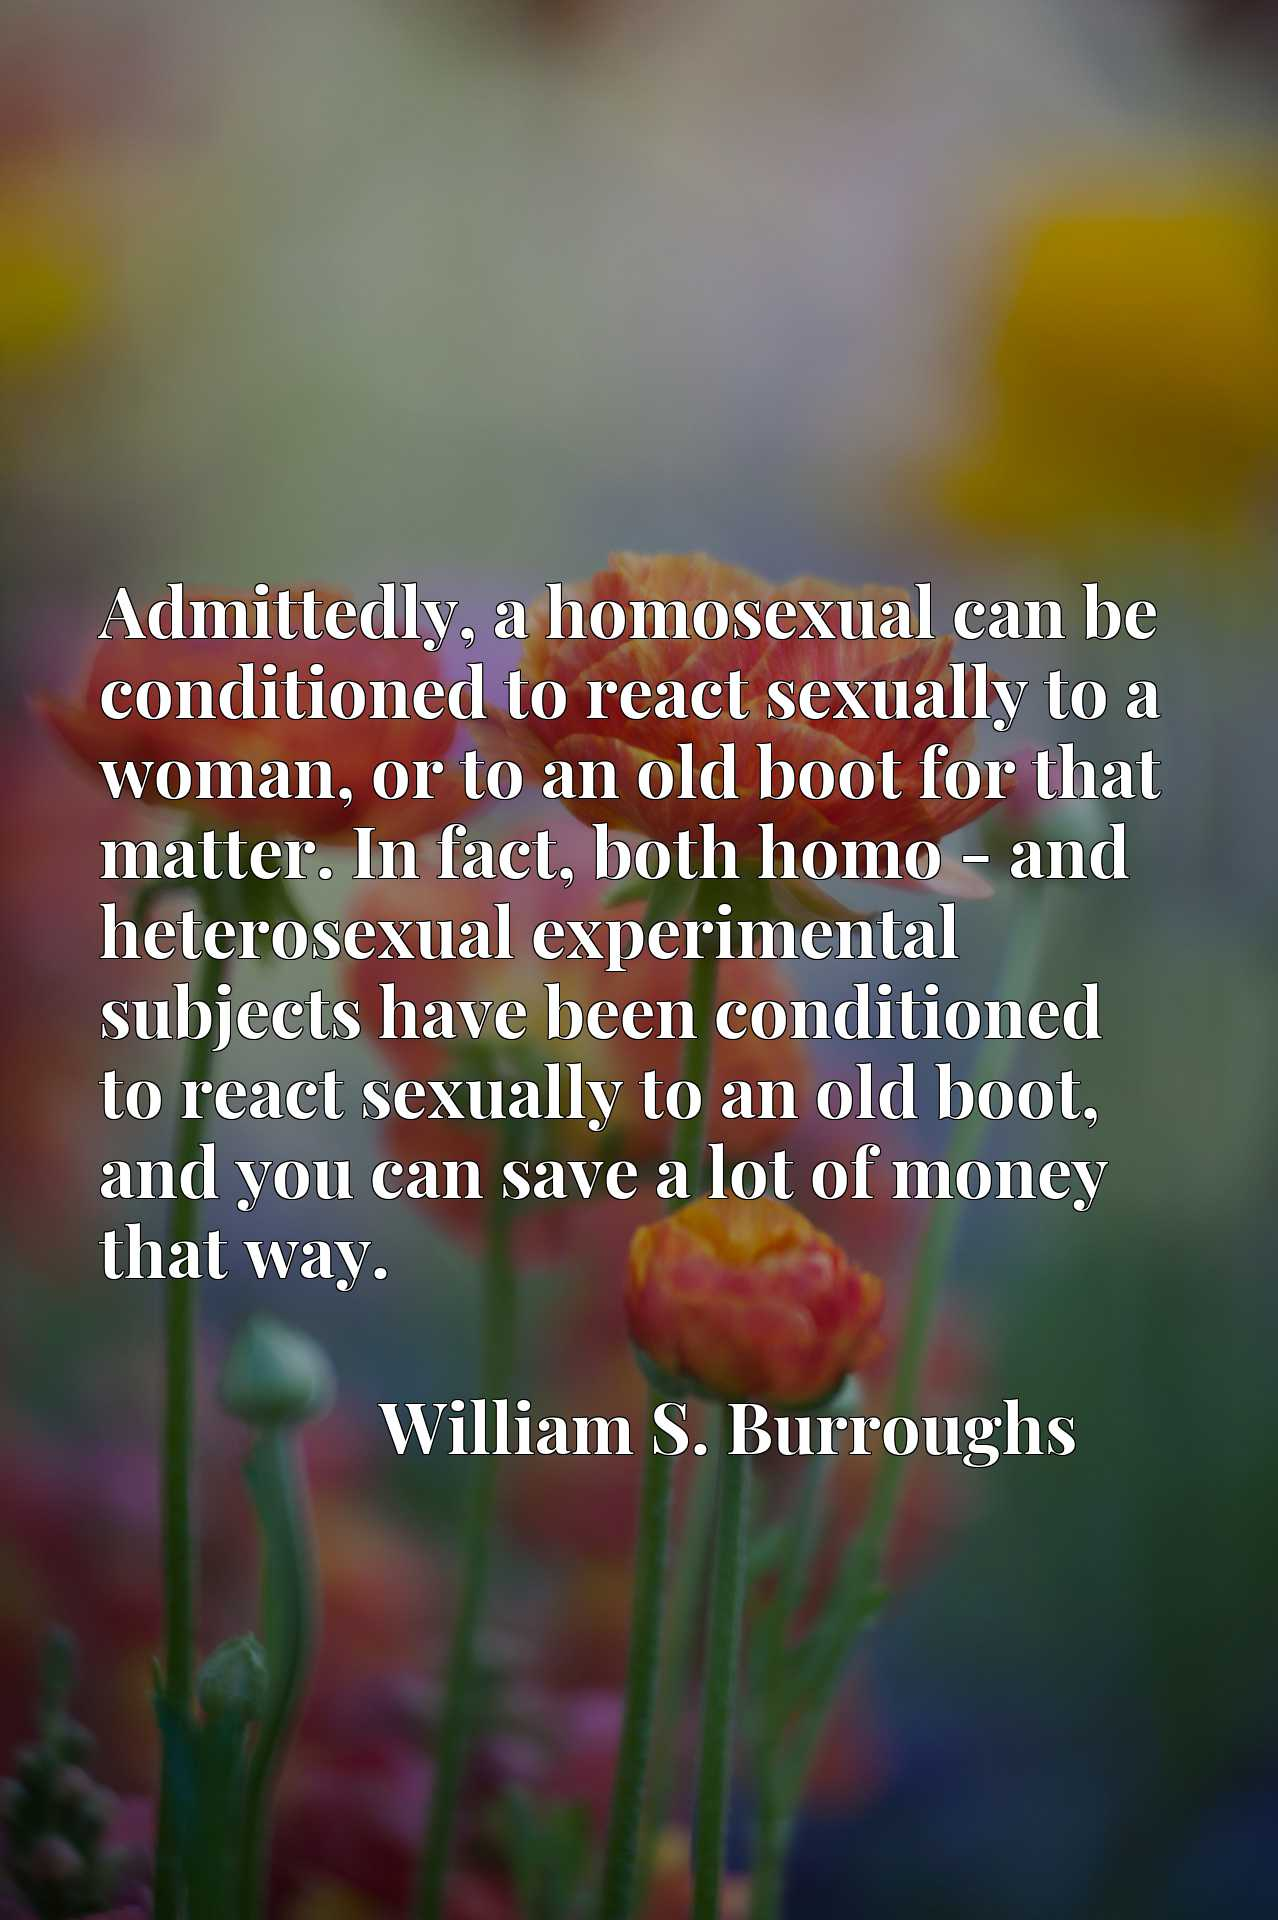 Admittedly, a homosexual can be conditioned to react sexually to a woman, or to an old boot for that matter. In fact, both homo - and heterosexual experimental subjects have been conditioned to react sexually to an old boot, and you can save a lot of money that way.